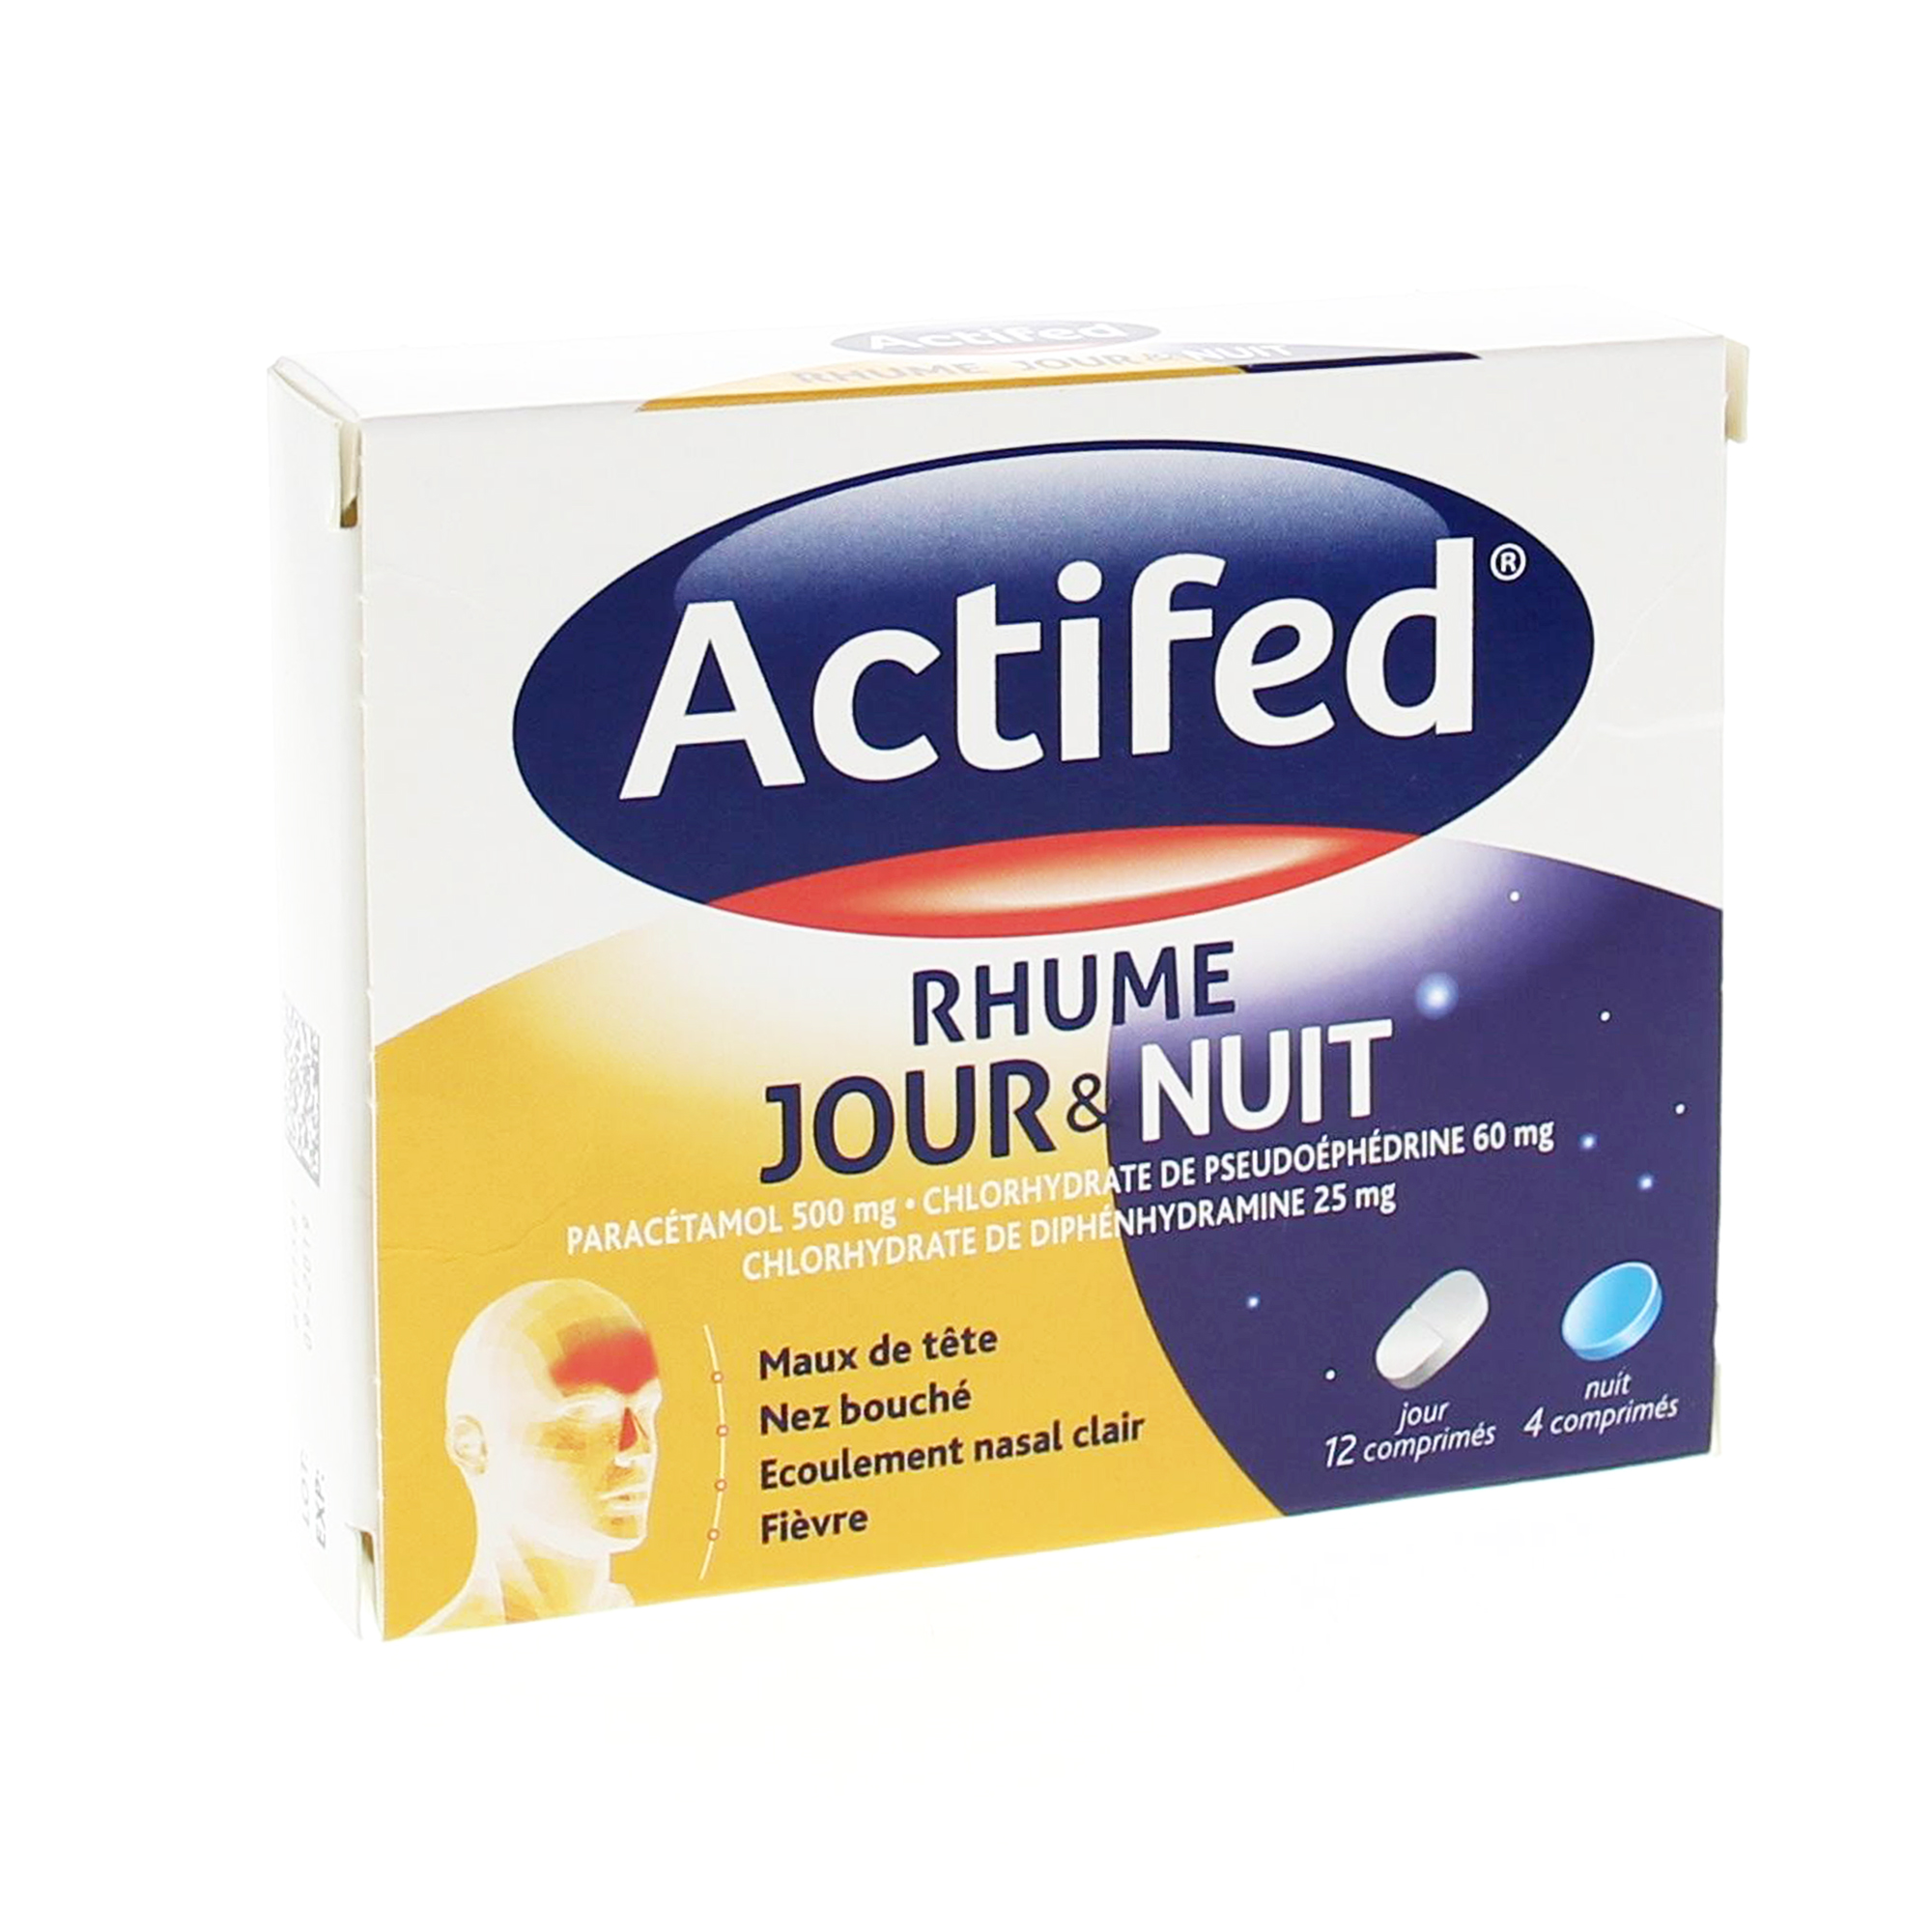 Actifed-rhume-jour-et-nuit-20393_101_1516103069